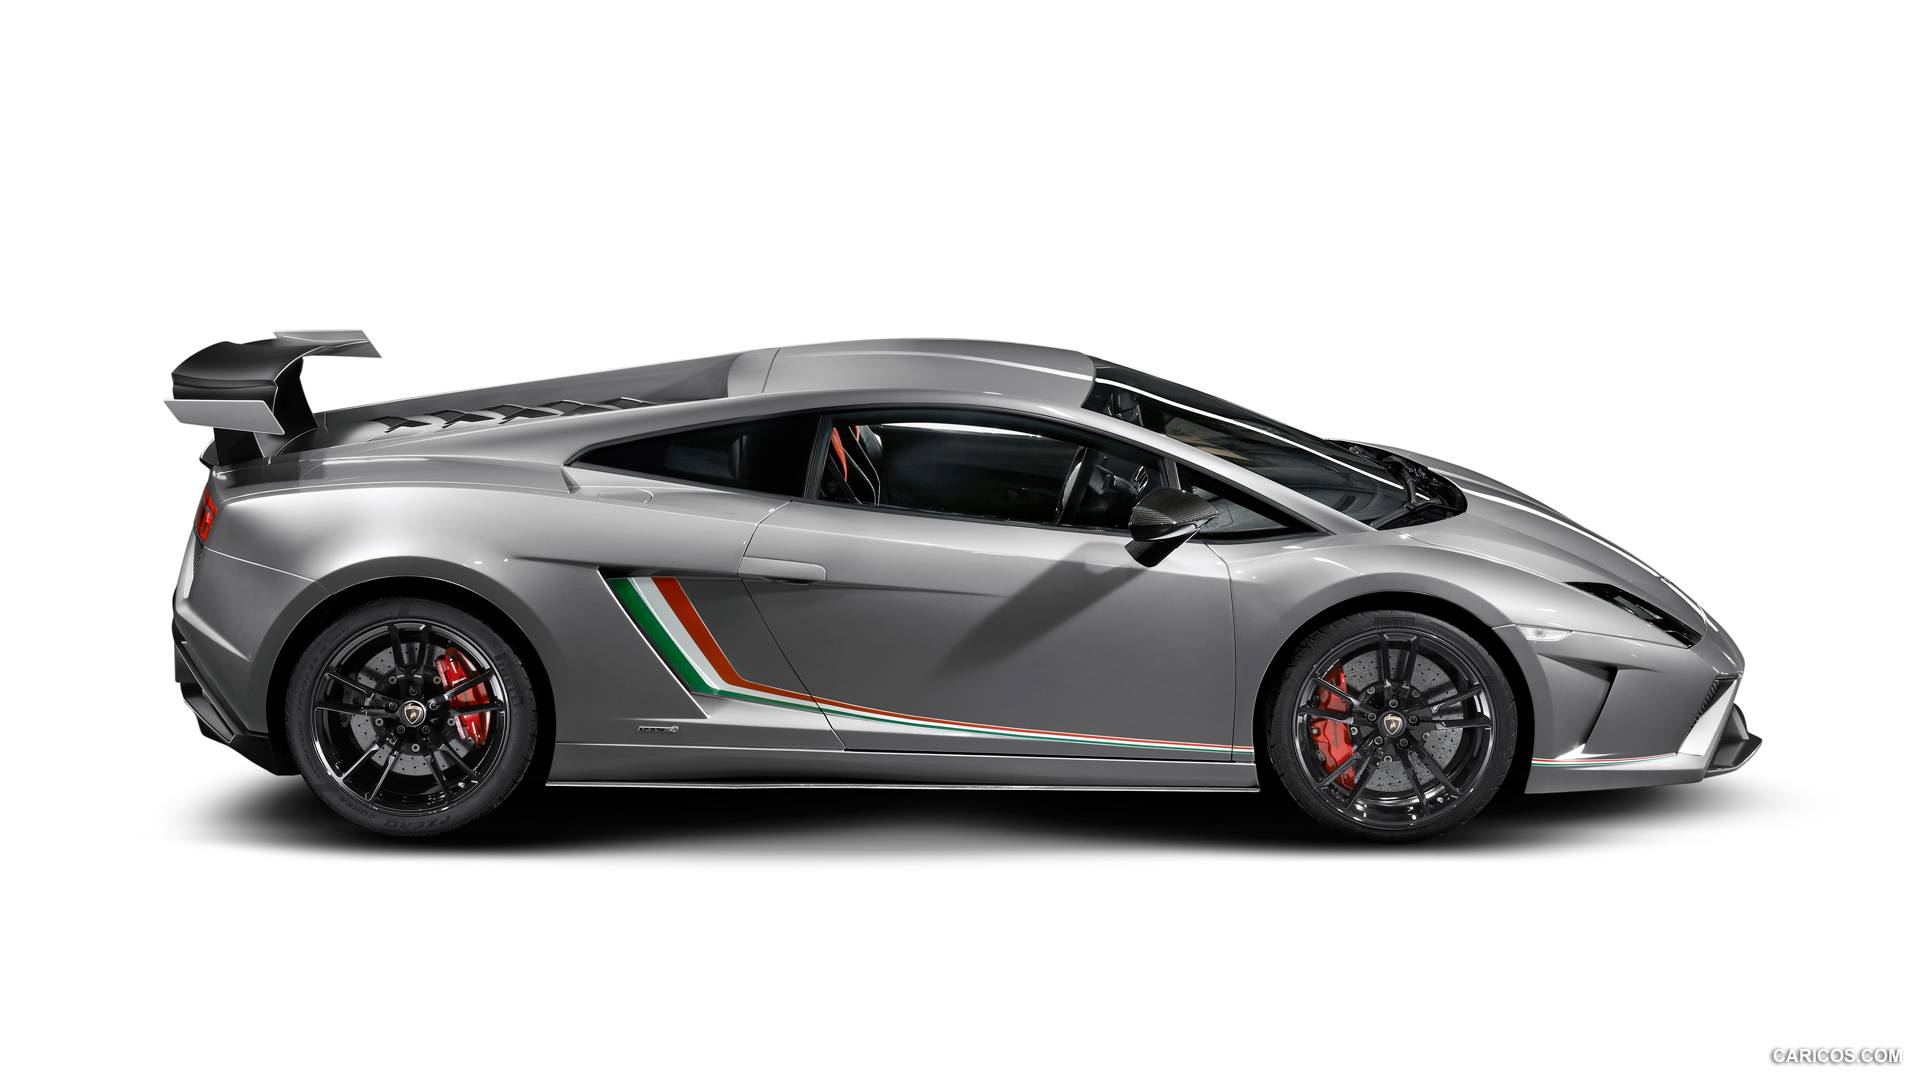 Lamborghini Gallardo LP 570-4 Squadra Corse photo 109595